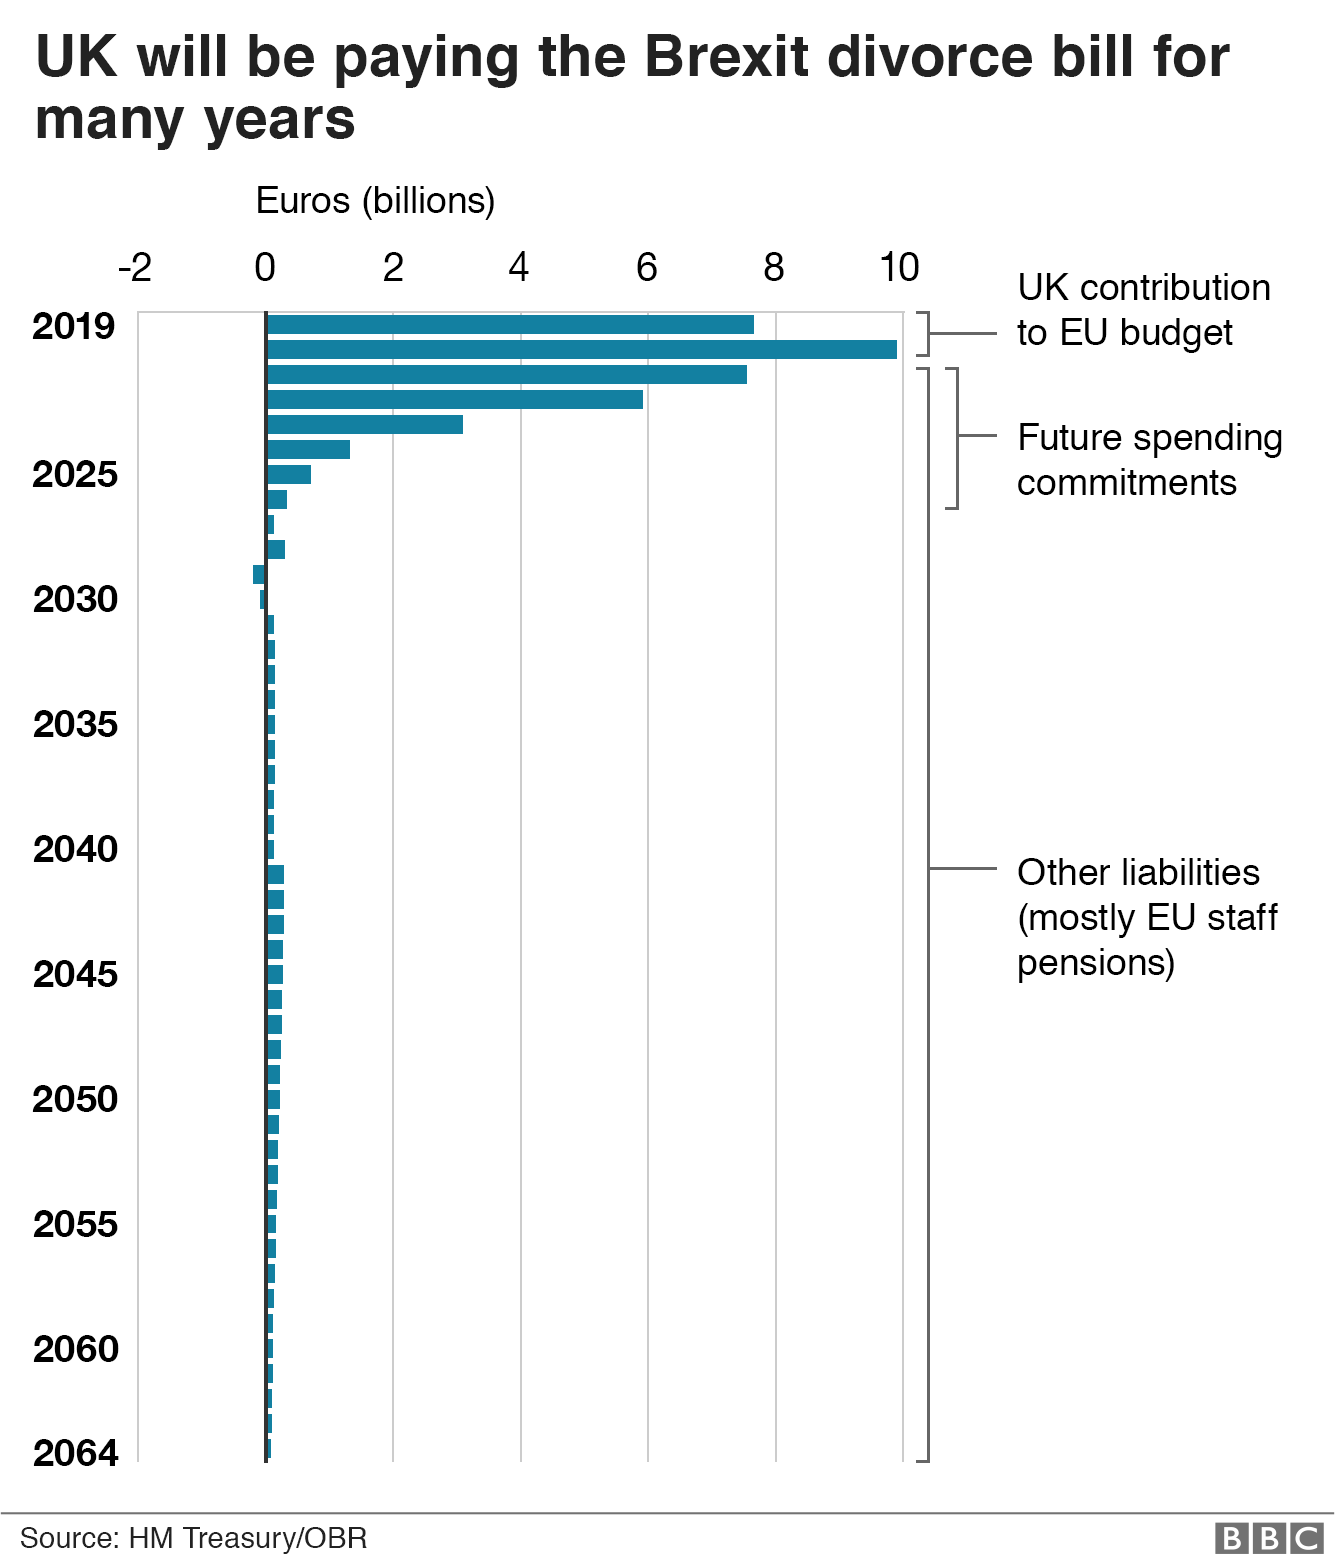 Bar chart showing UK will be paying Brexit divorce bill for many years